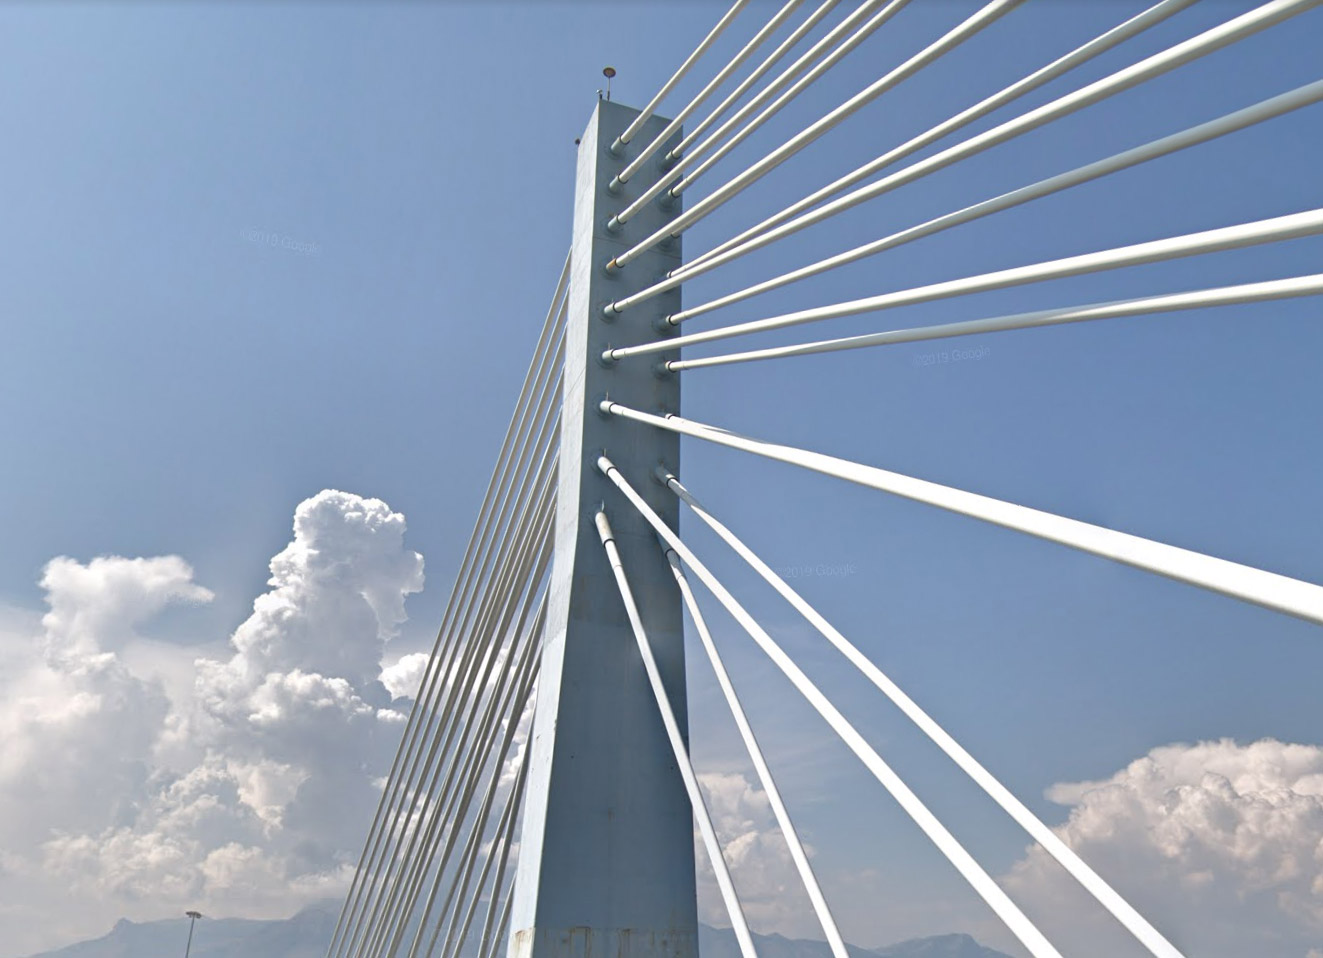 Cable-stayed bridge over the Garigliano river - municipality of Sessa Aurunca, Caserta